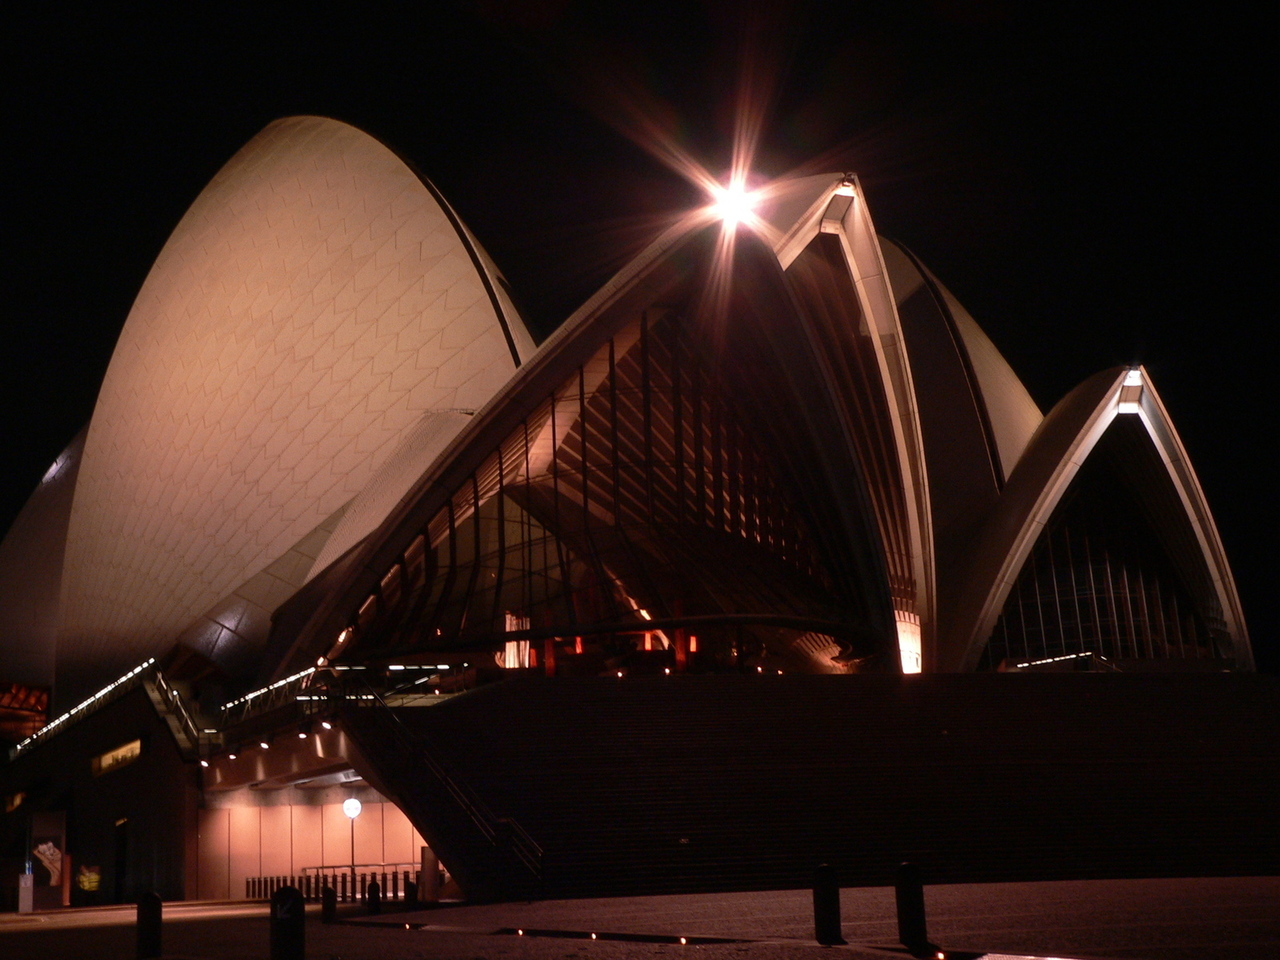 sydney opera house at night | EconAlerts